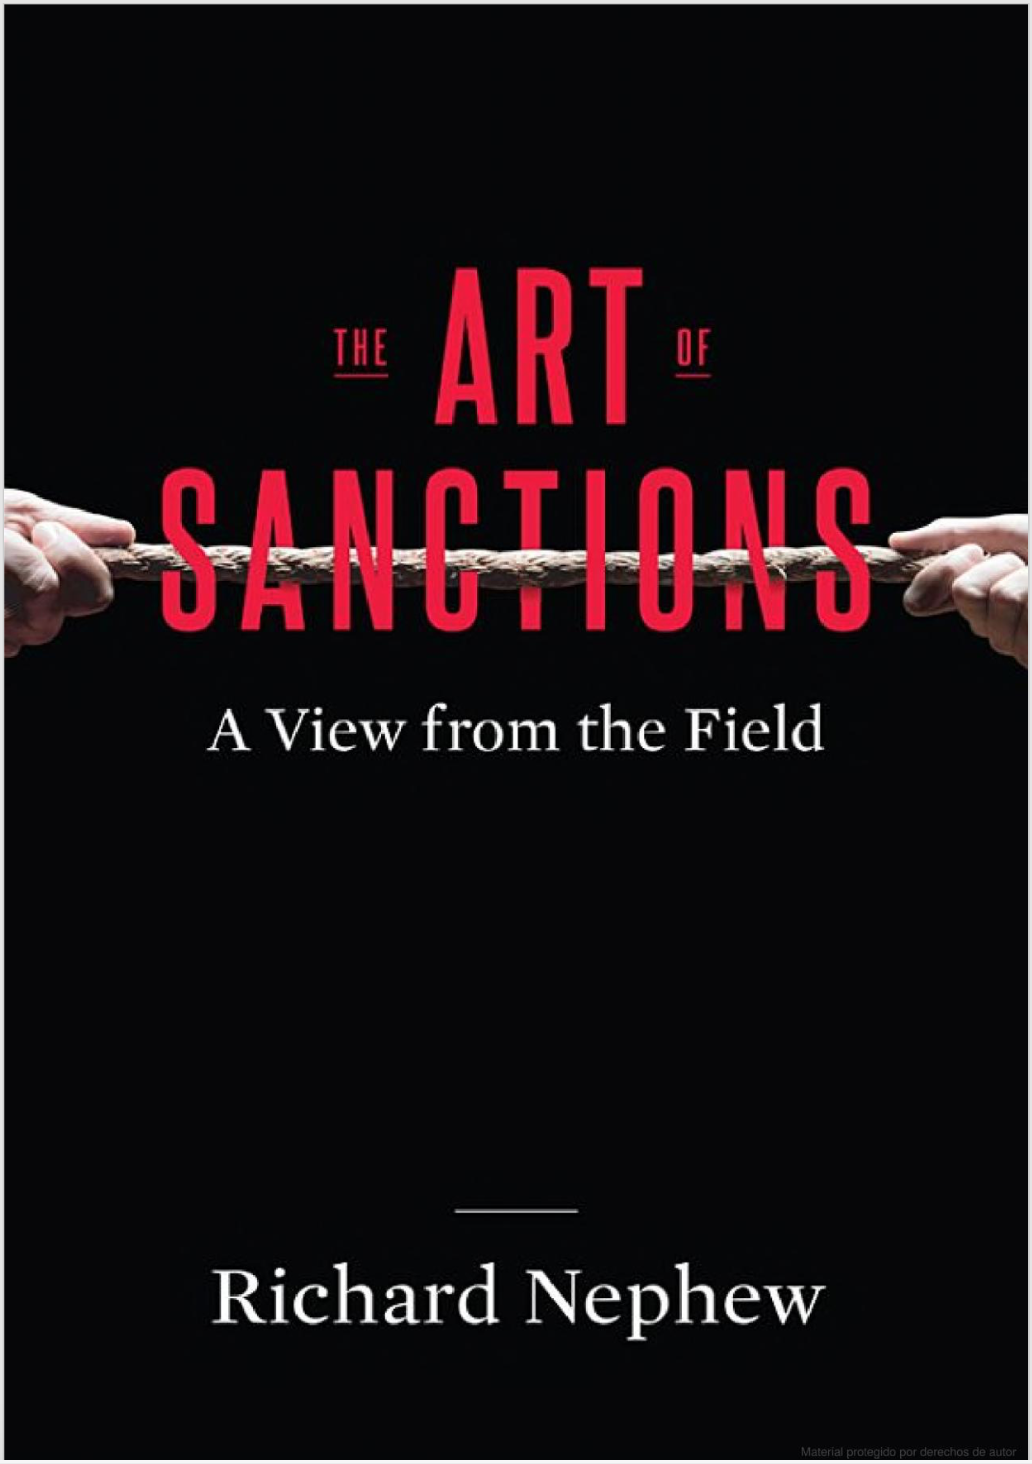 The Art of Sanctions. A View from the Field